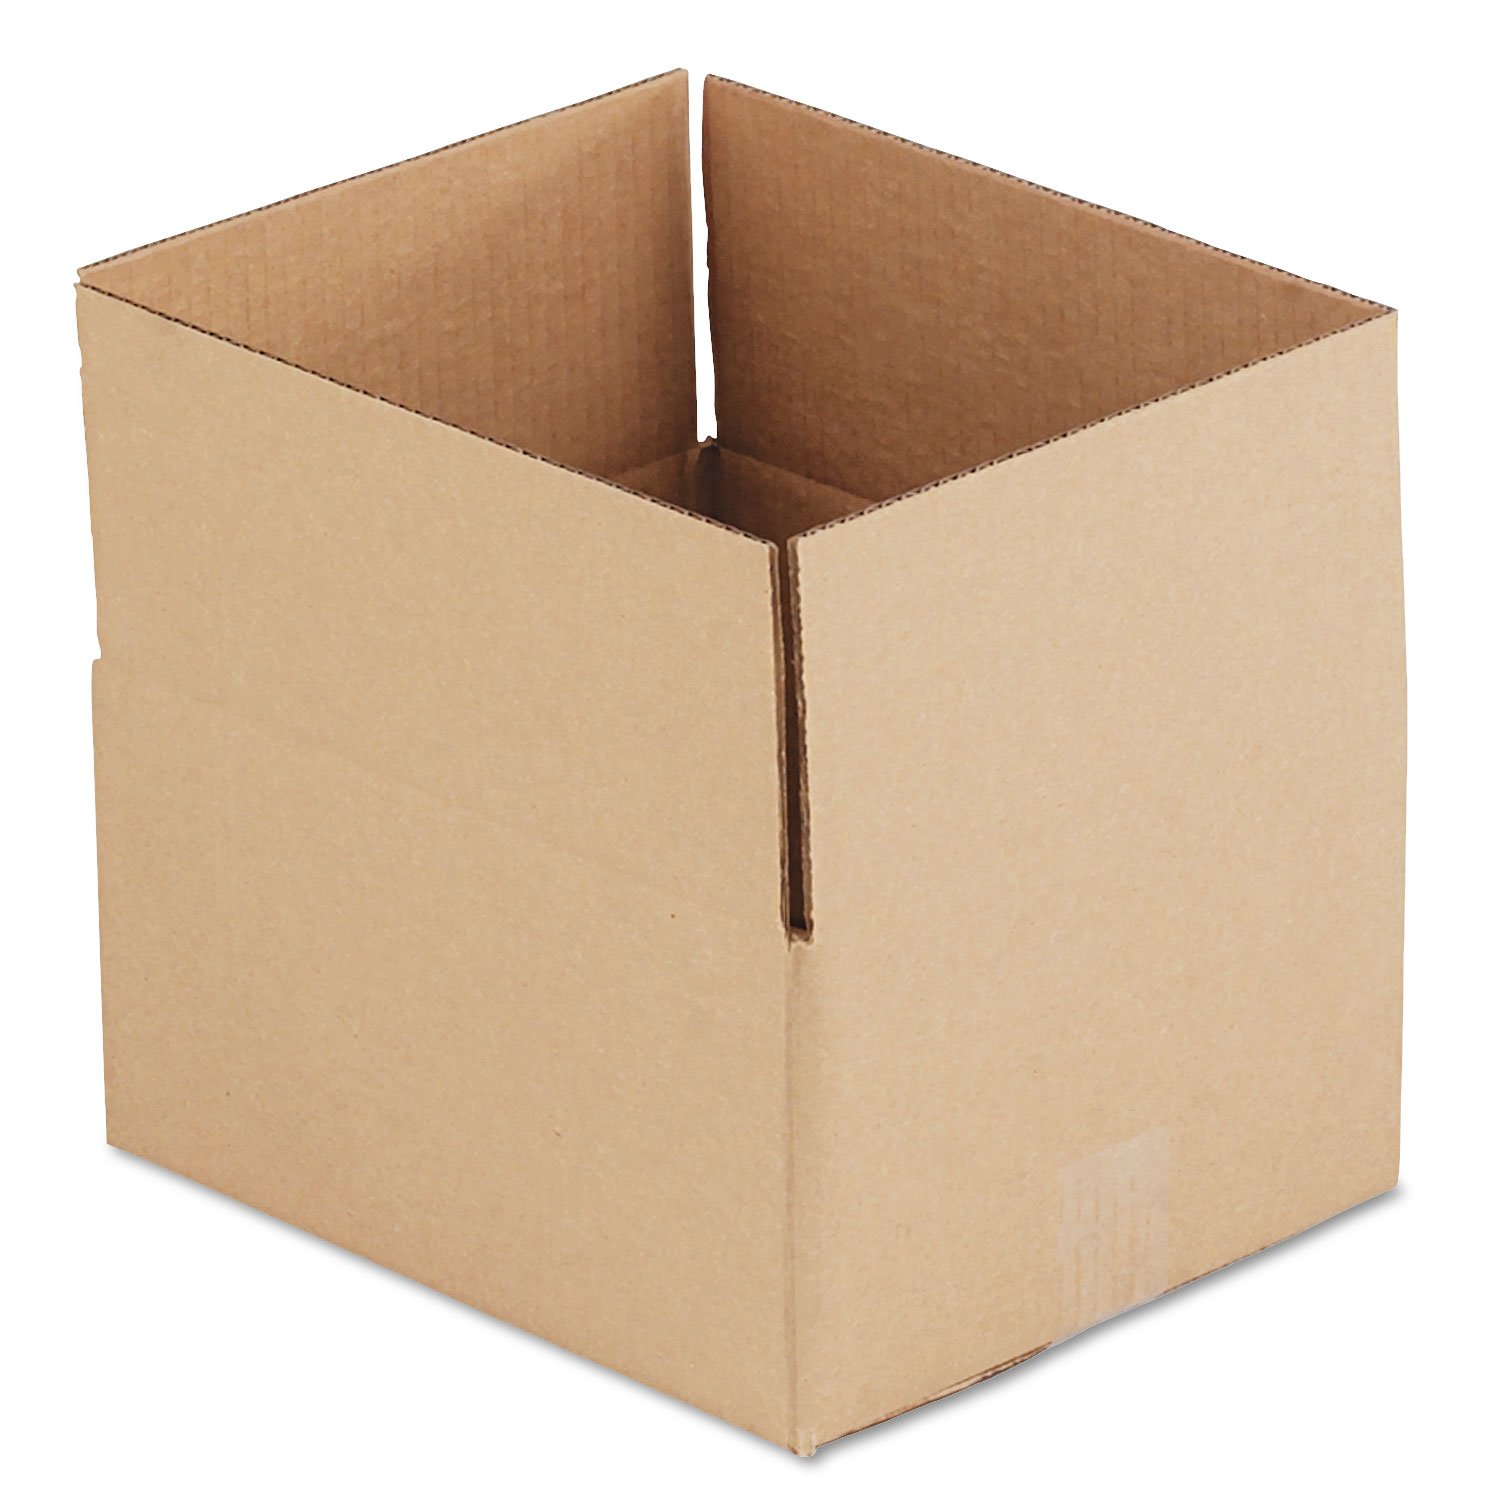 General Supply 12106 Brown Corrugated - Fixed-Depth Shipping Boxes, 12l X 10w X 6h, 25/Bundle